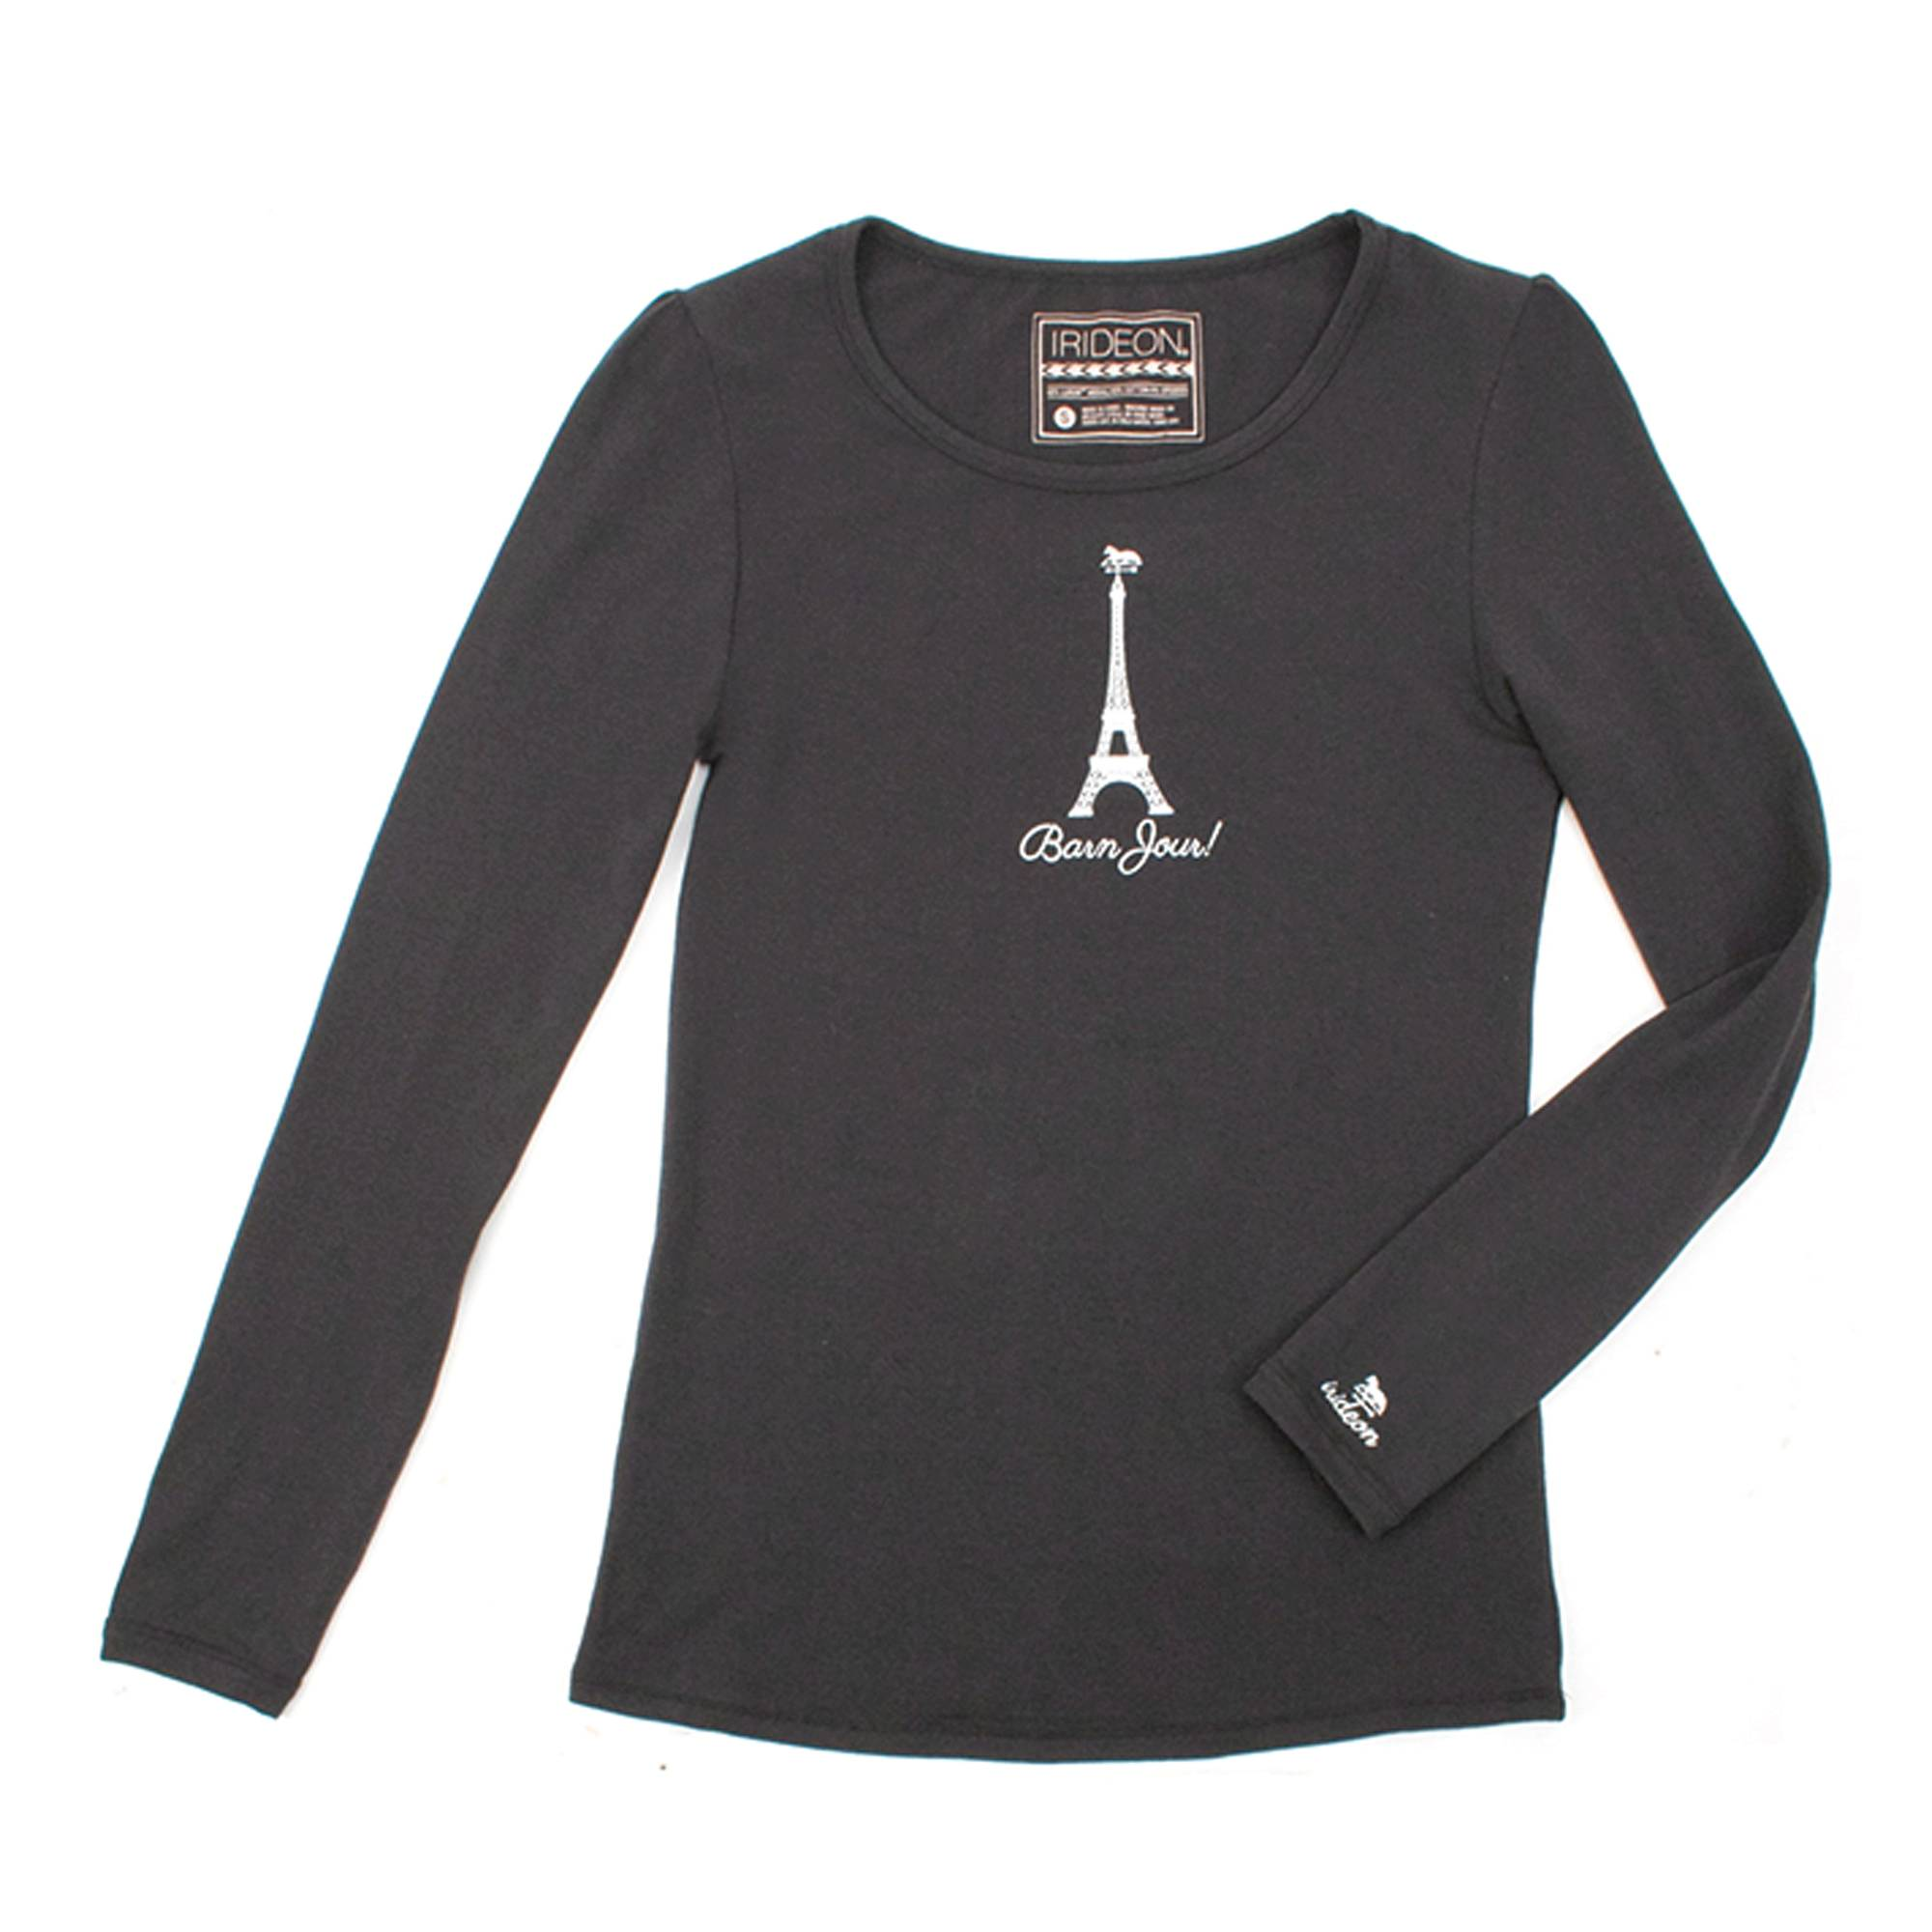 Irideon Barn Jour Long Sleeve Tee - Ladies